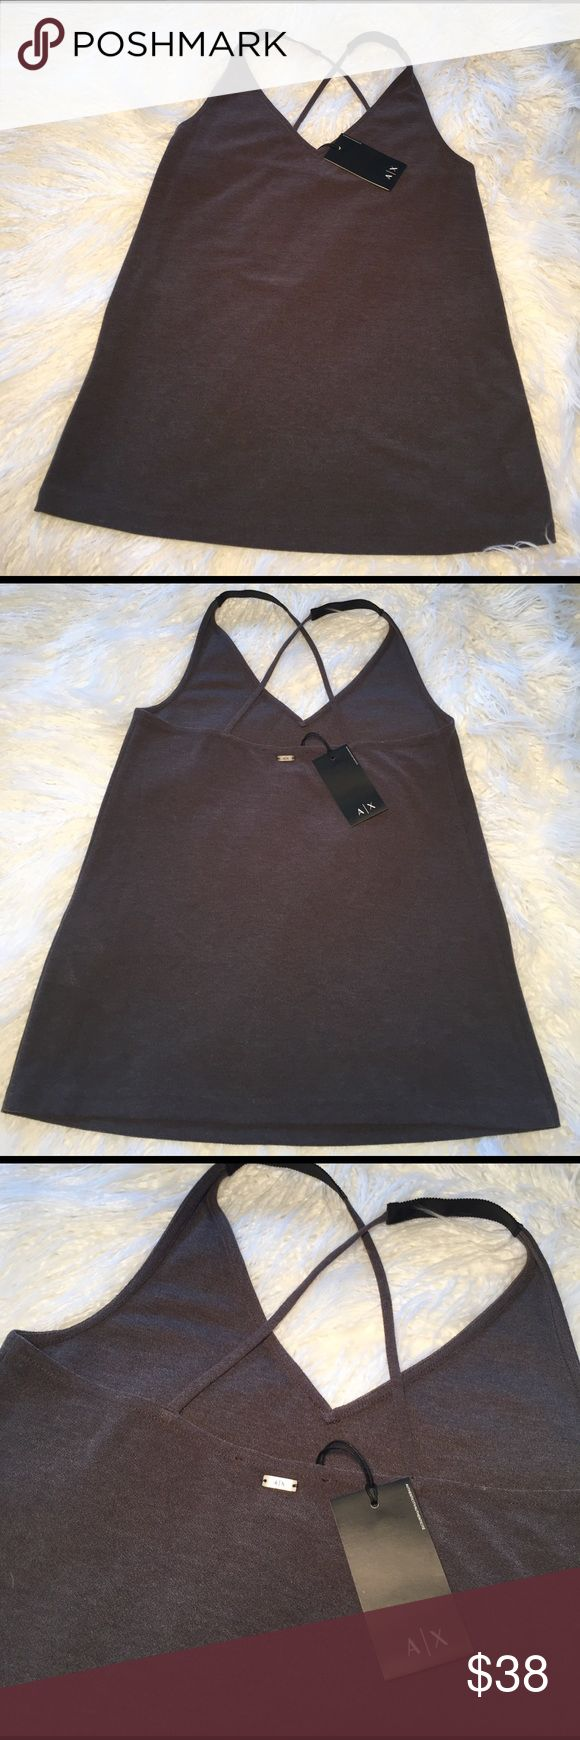 A/X ARMANI EXCHANGE Cross Strap Tank Top A/X ARMANI EXCHANGE Cross Strap Tank Top Women's A/X Armani Exchange Tops Tank Tops